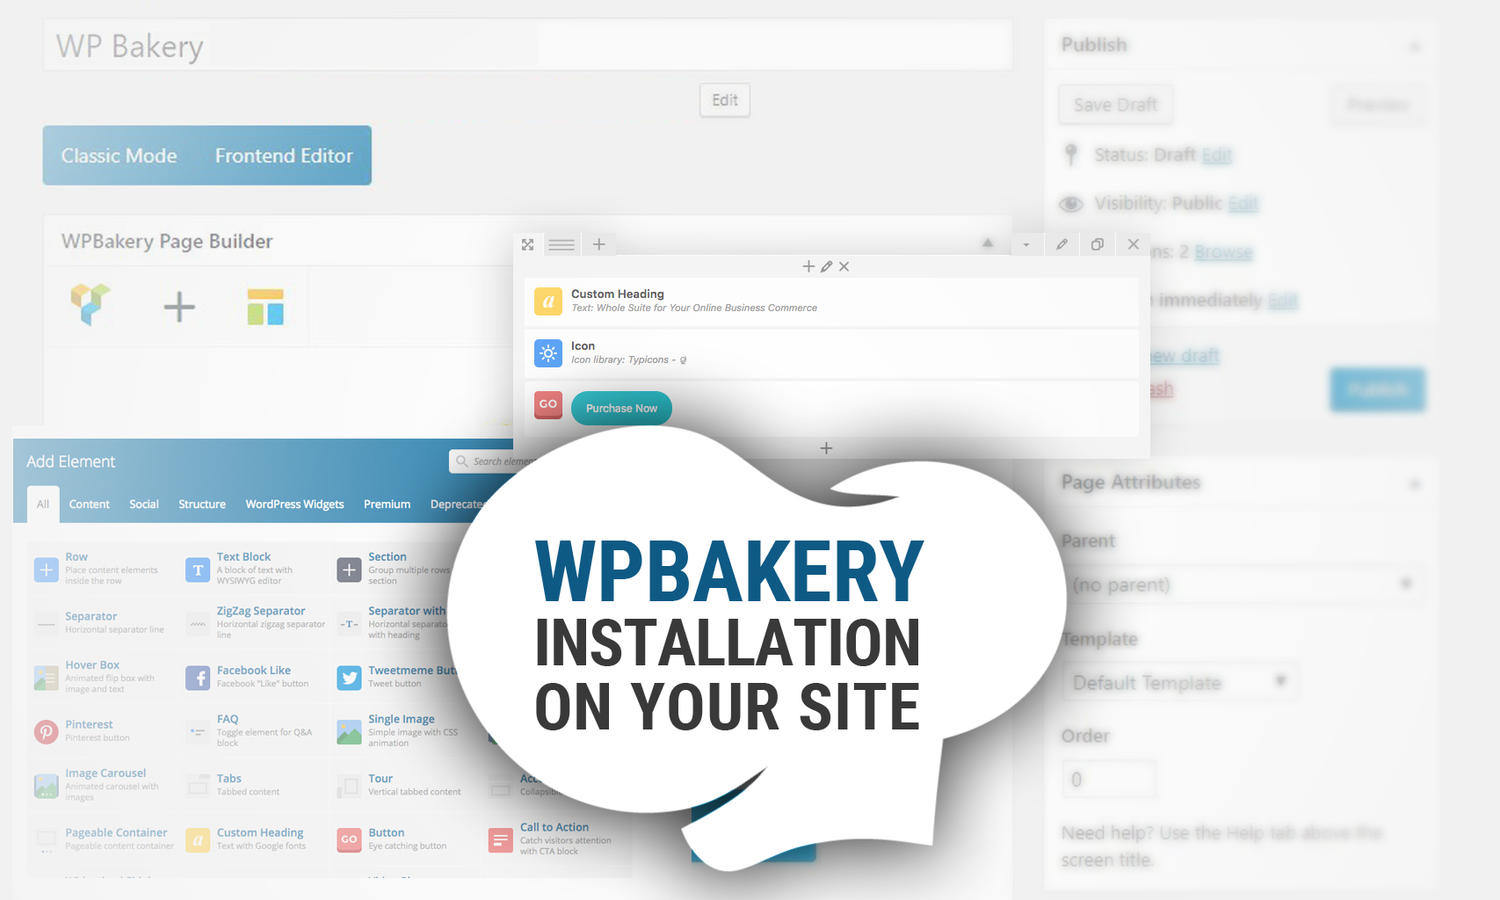 Bakery Page Builder Installation or Upgrade version  by madridnyc - 110928